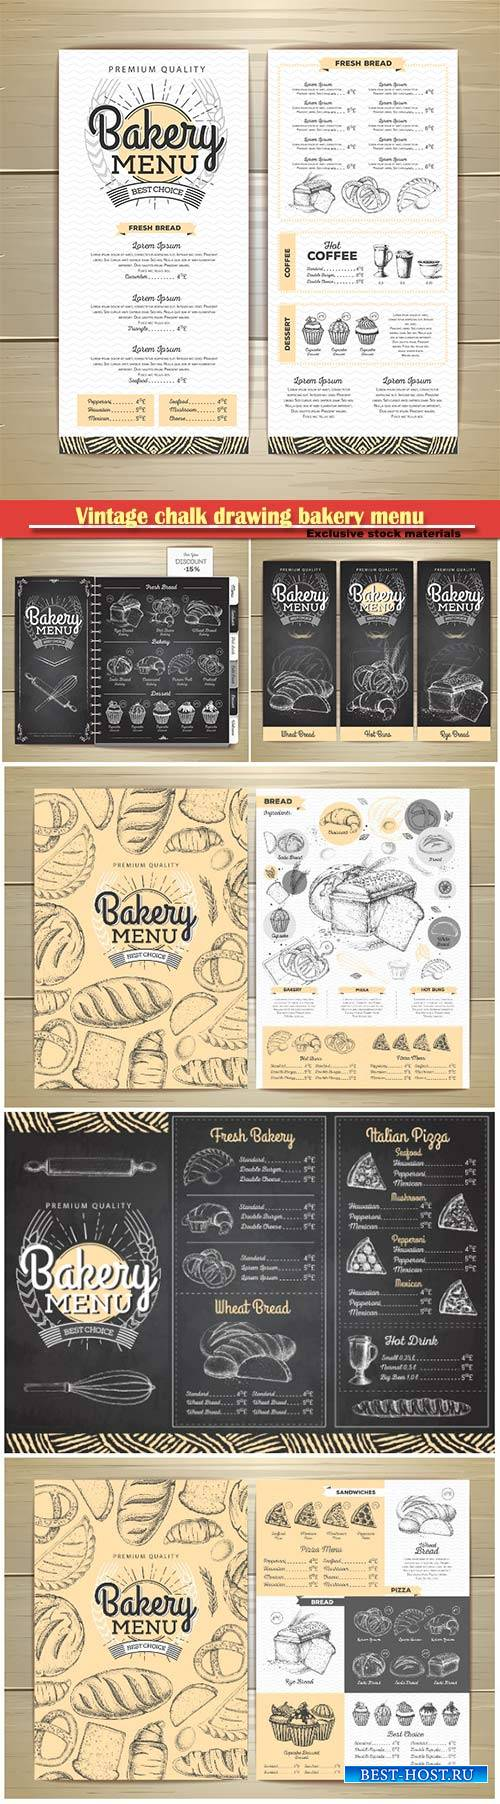 Vintage chalk drawing bakery menu design, restaurant menu